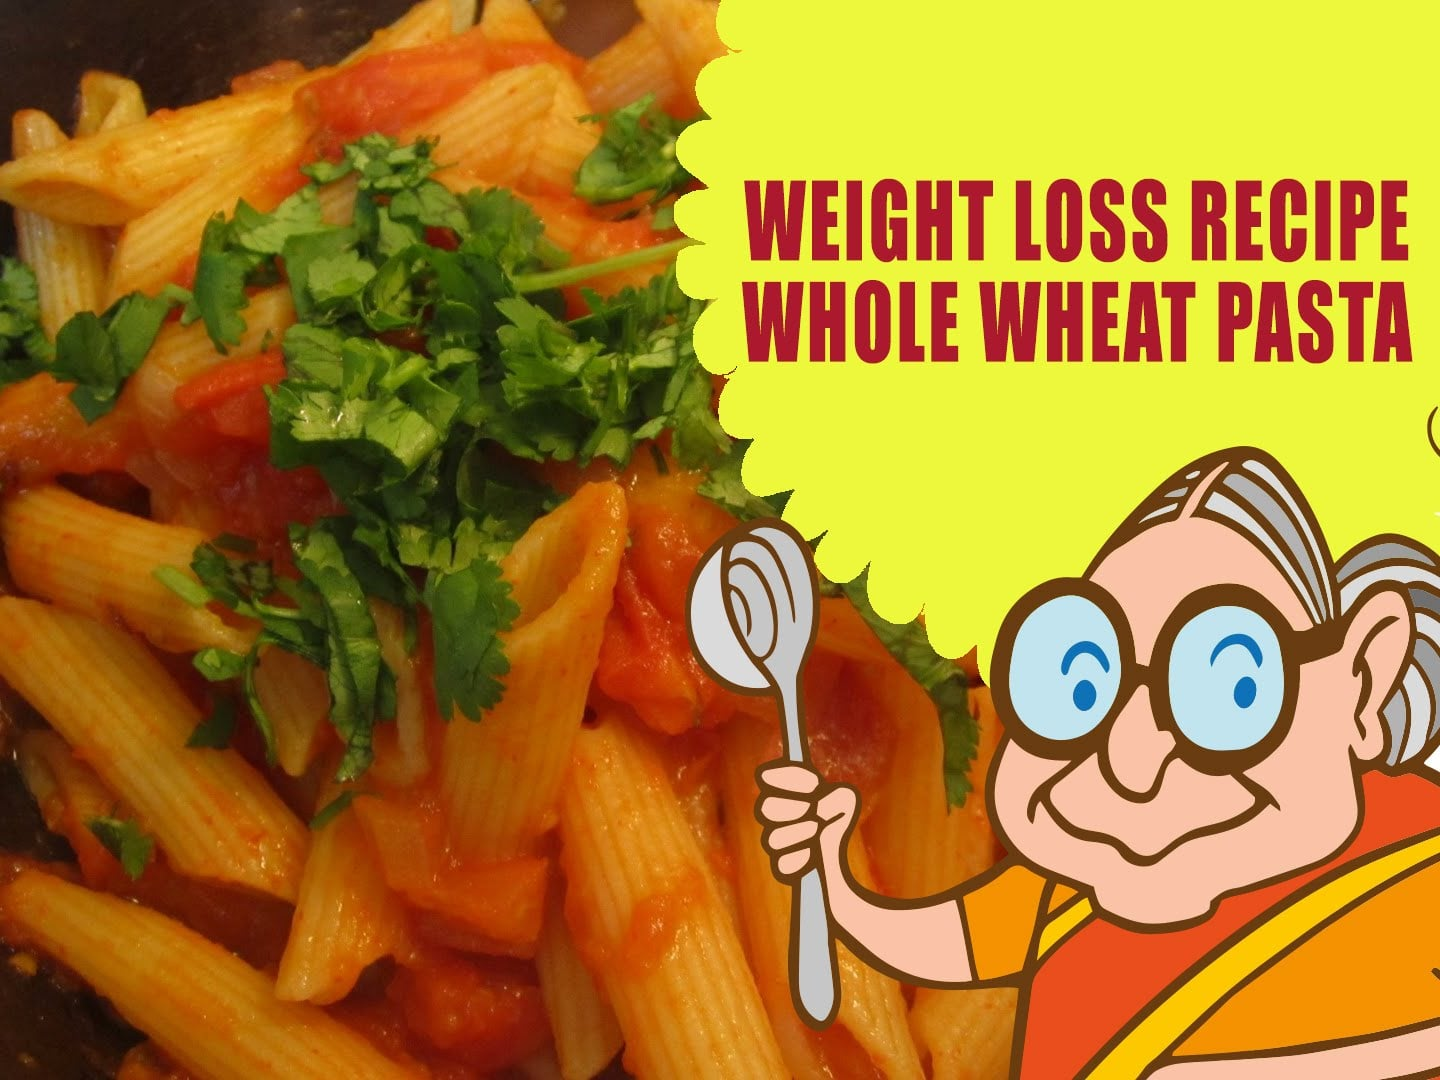 LOSE WEIGHT NATURALLY – WEIGHT LOSS RECIPES – WHOLE WHEAT PASTA – VEGETARIAN DIET PLAN